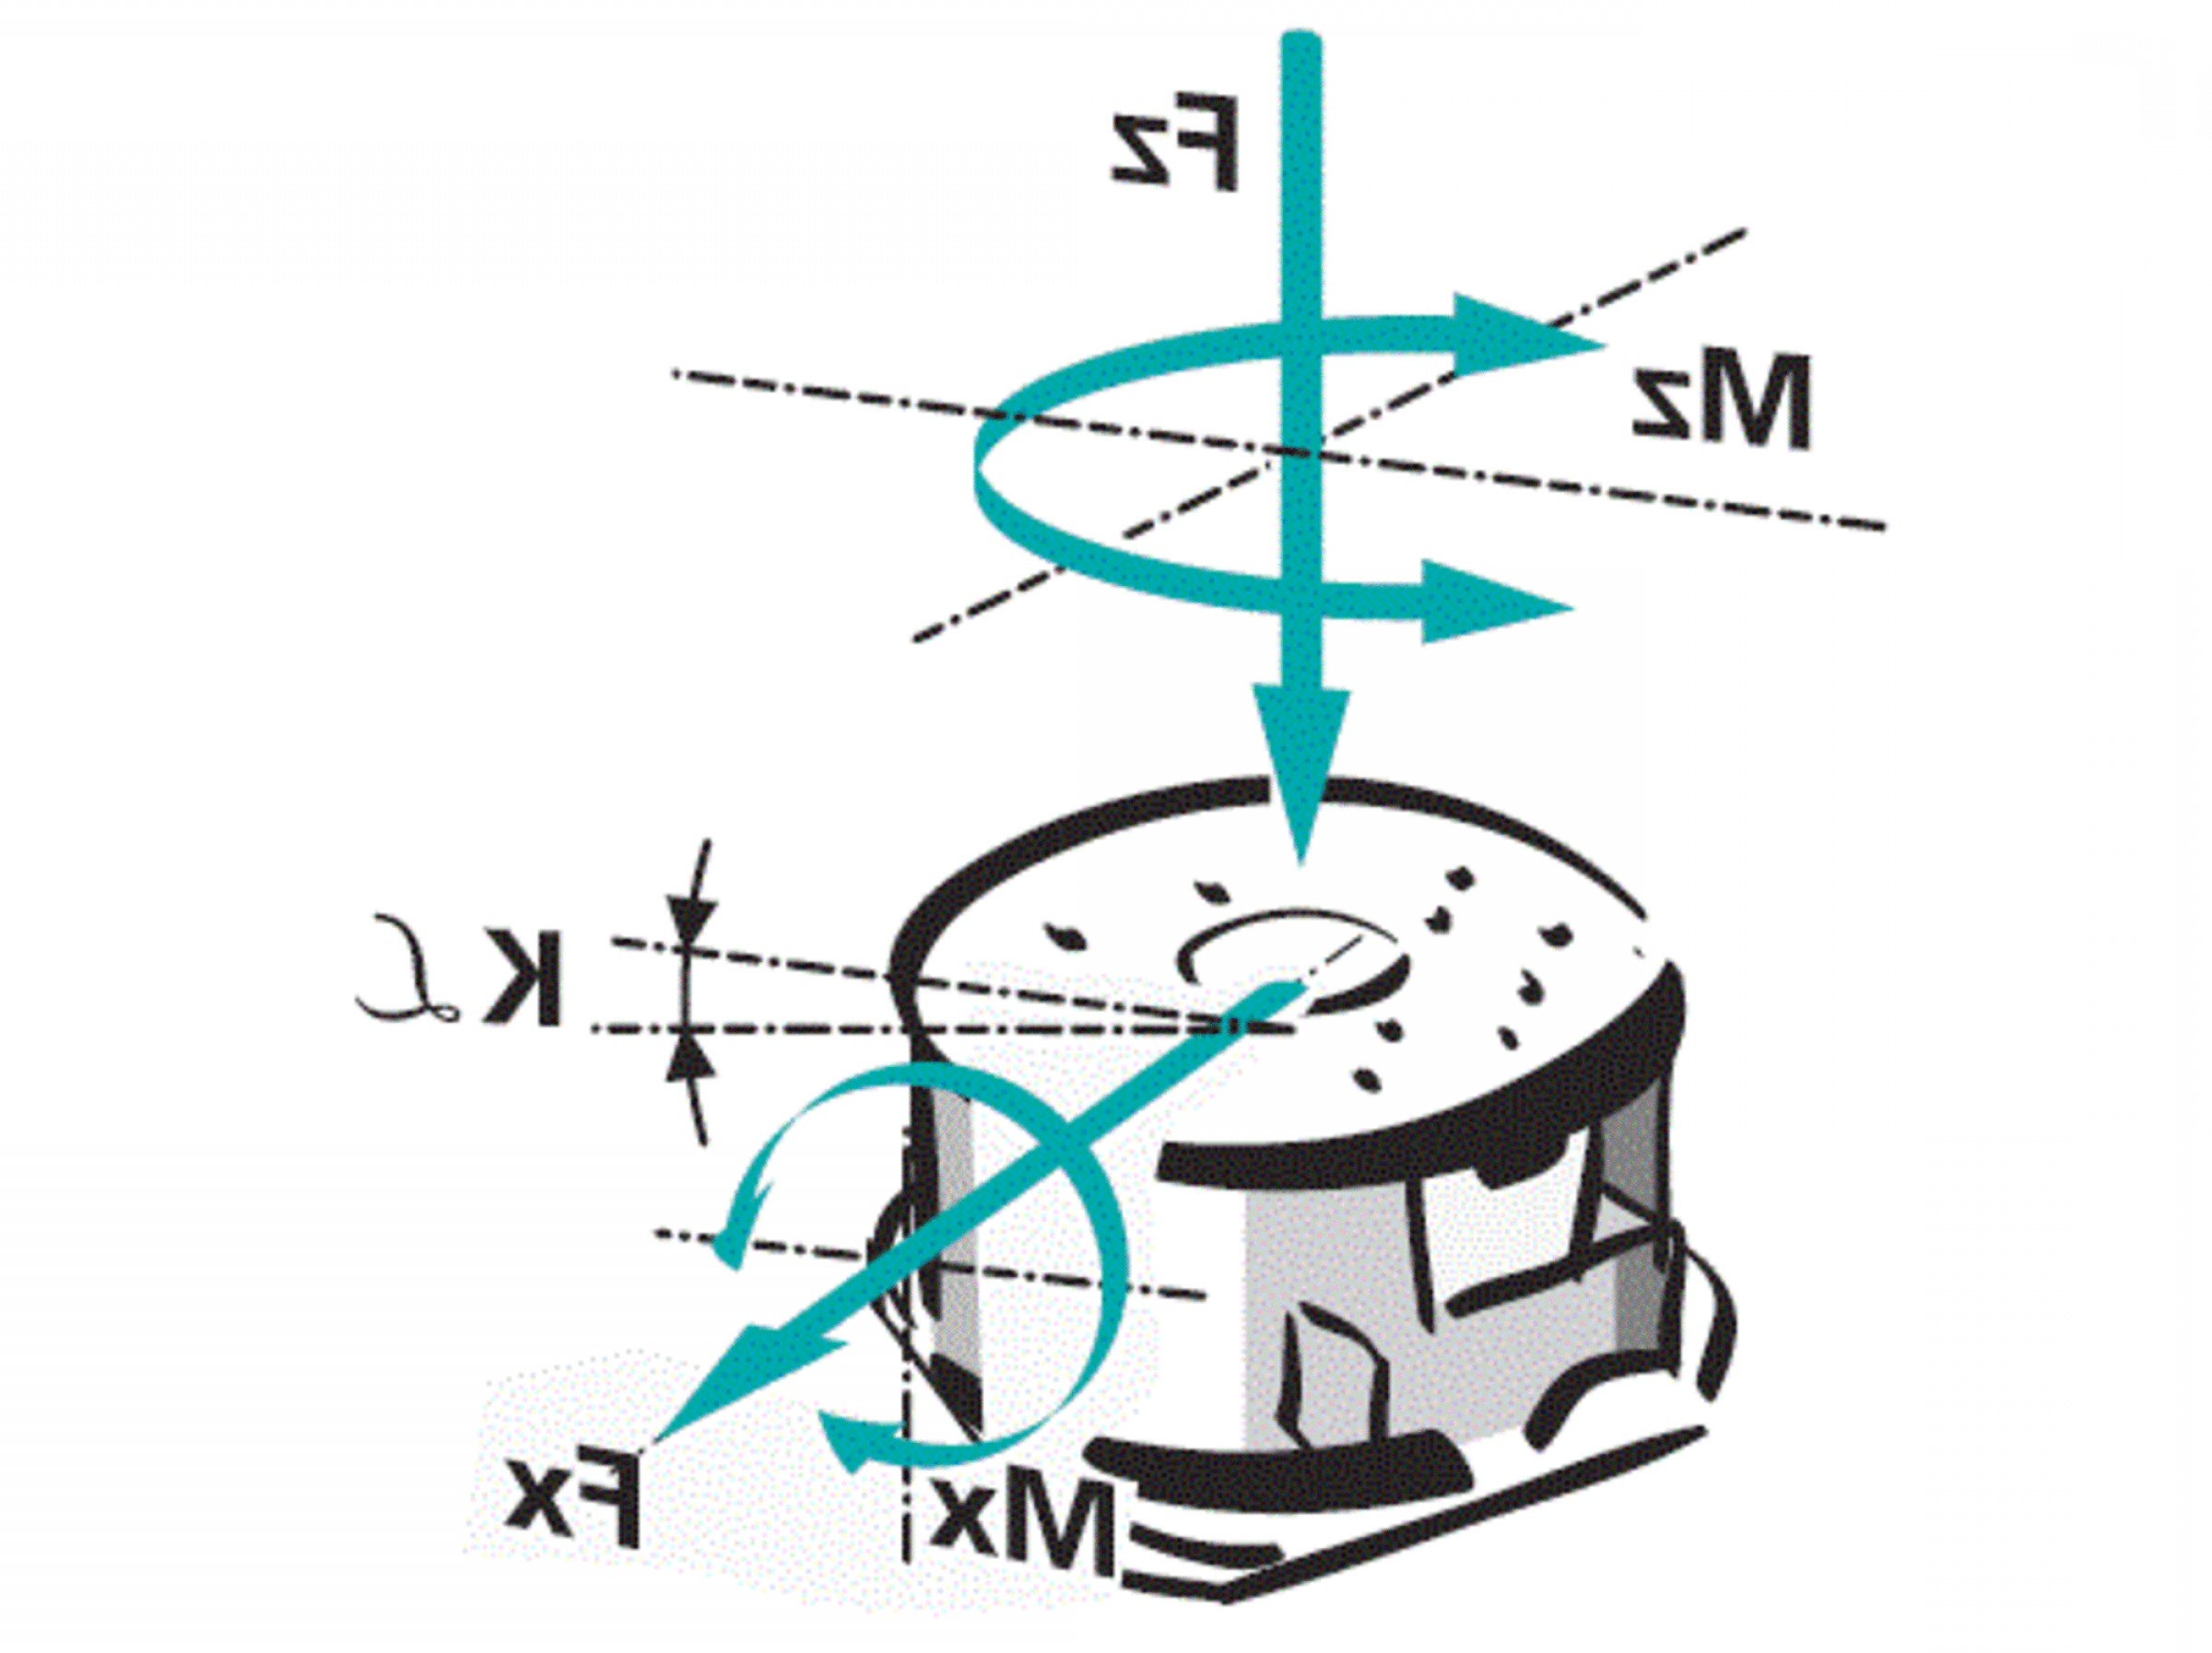 Rotational Kinematics Diagram Of Vectors: Upr Ultraprecision Rotation Stage